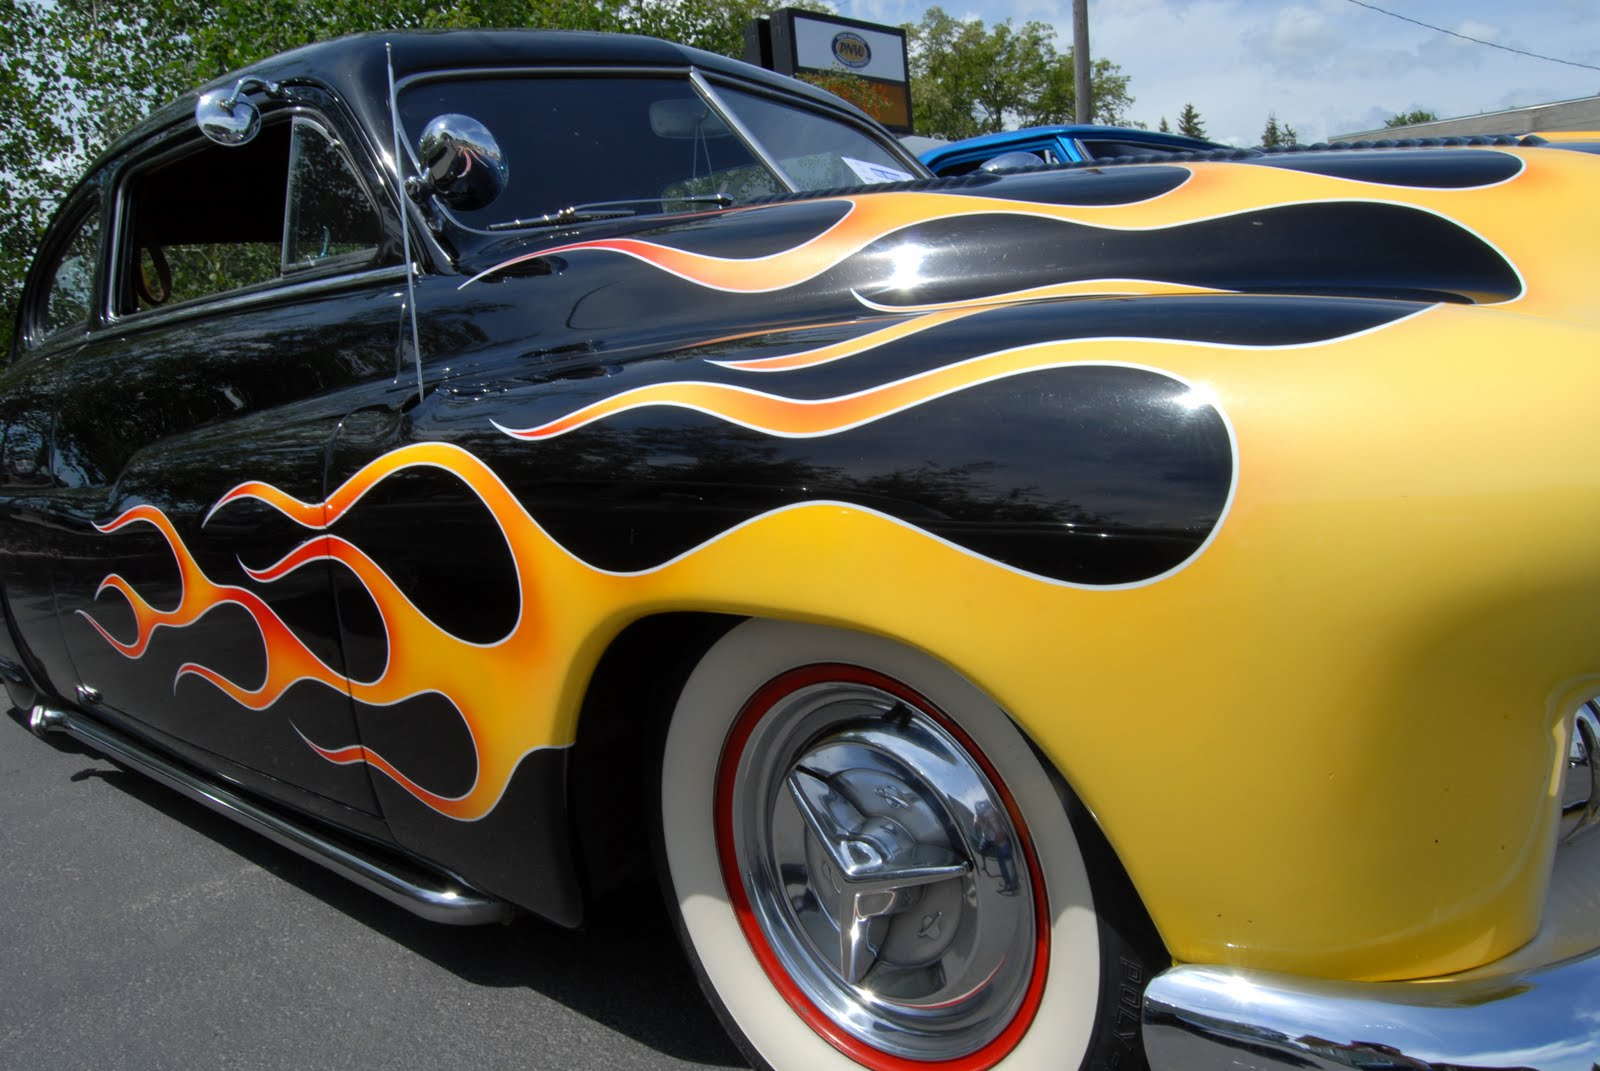 Exelent Old Ride Car Shows Mold - Classic Cars Ideas - boiq.info